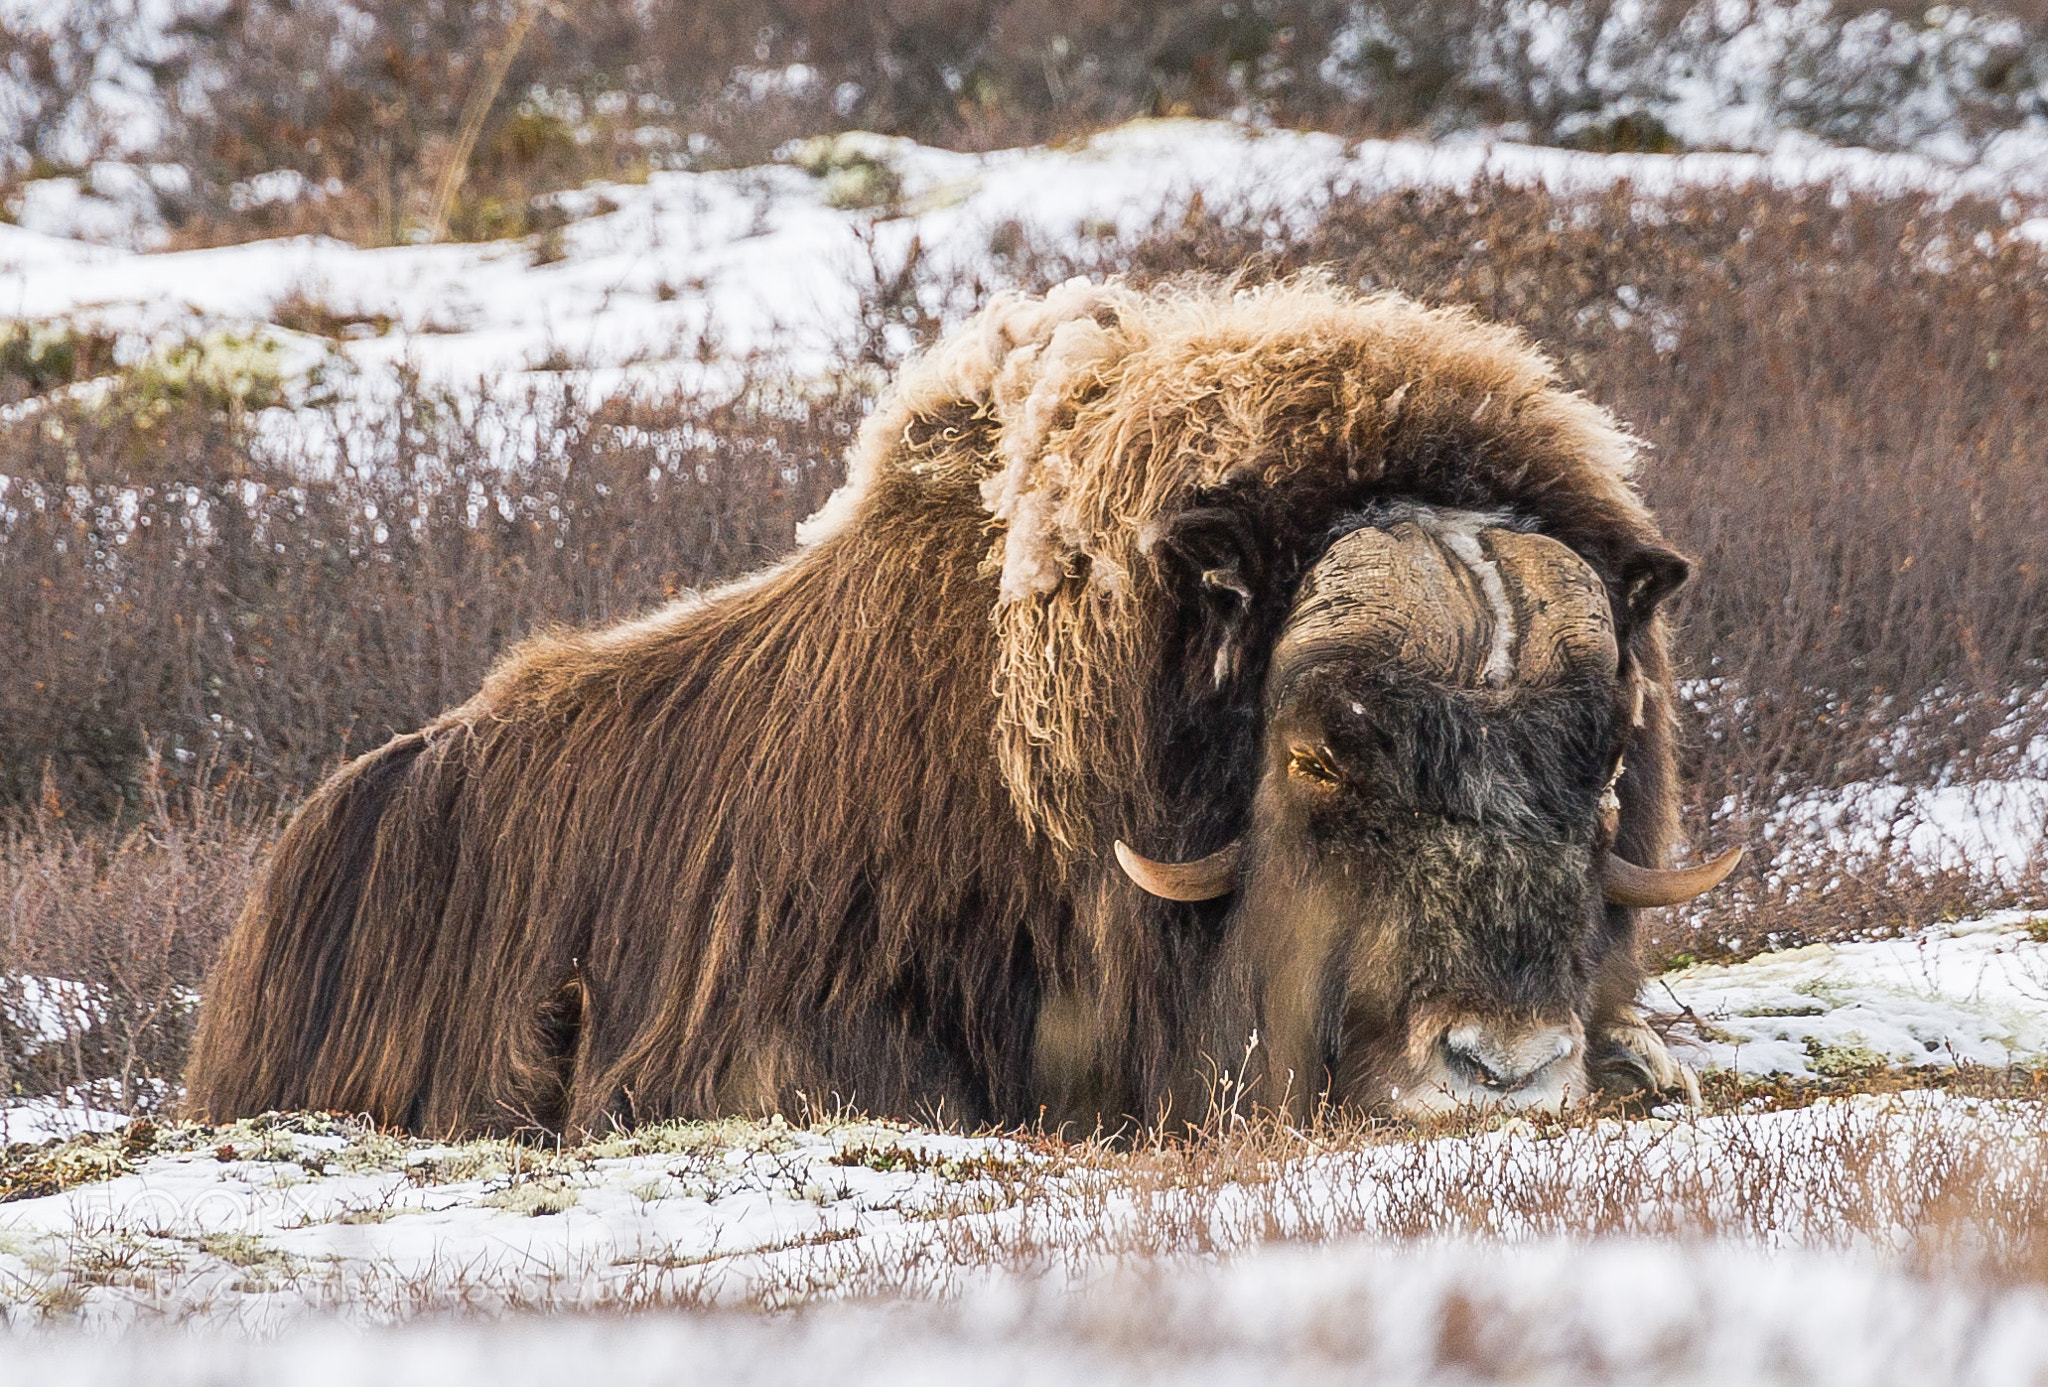 Photograph 400 kg with dormant Moskus by Jørn Allan Pedersen on 500px